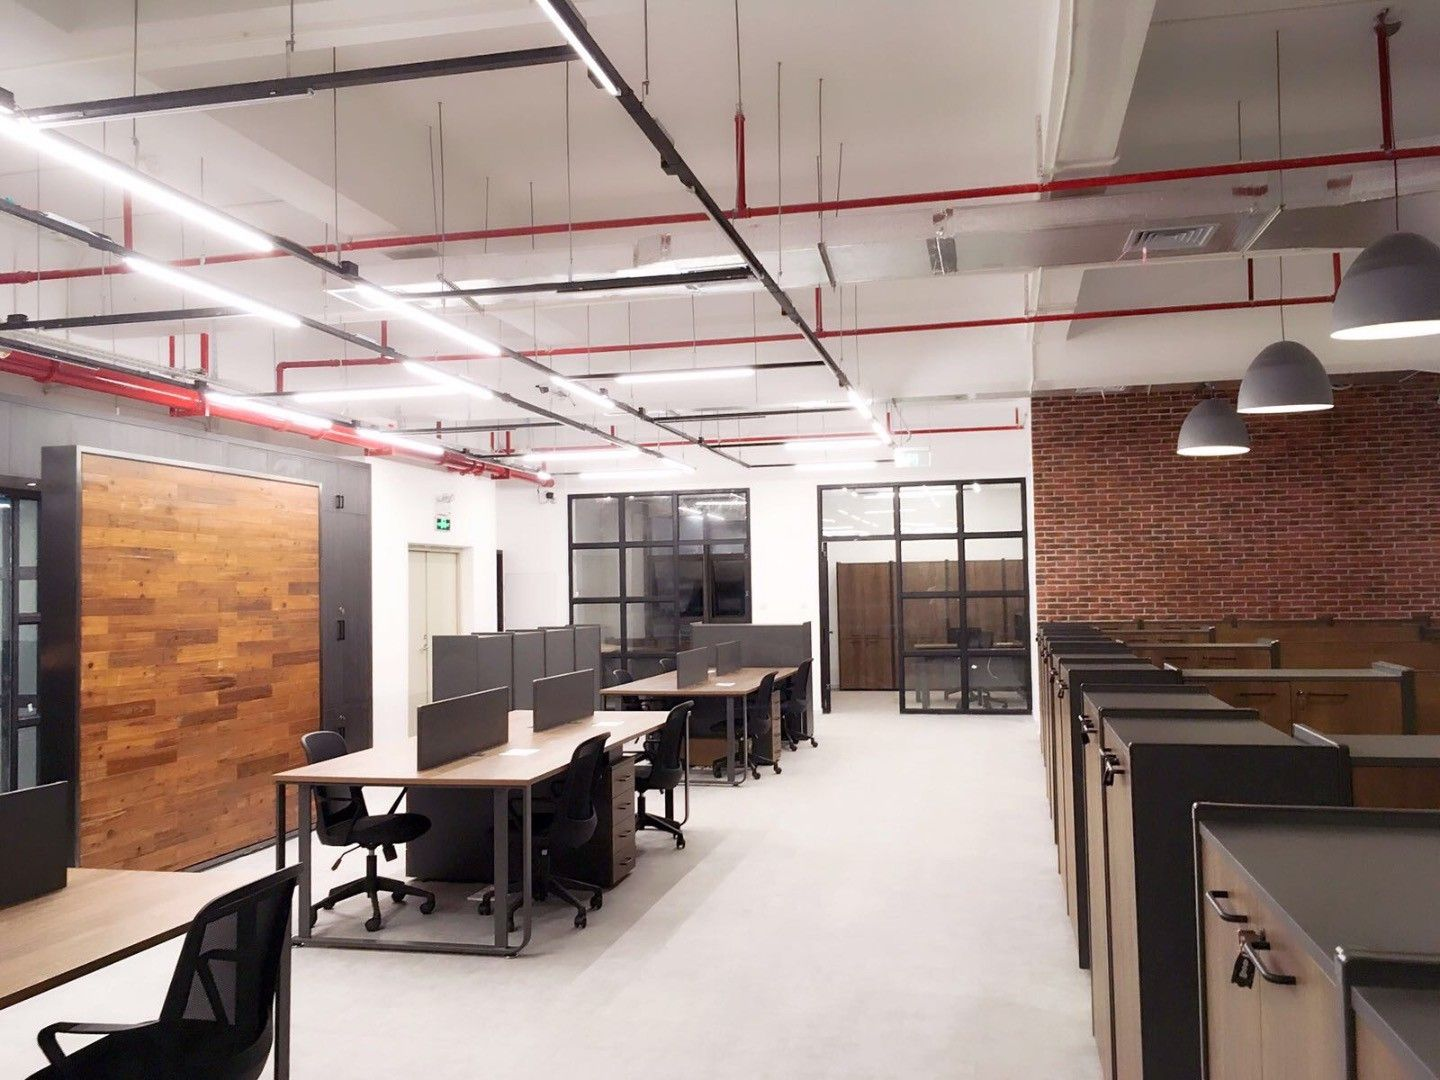 Office Workspace Office Space Interior Design Find The Best One Person Design Firm Freelance I Home Office Design Creative Office Design Small Space Design